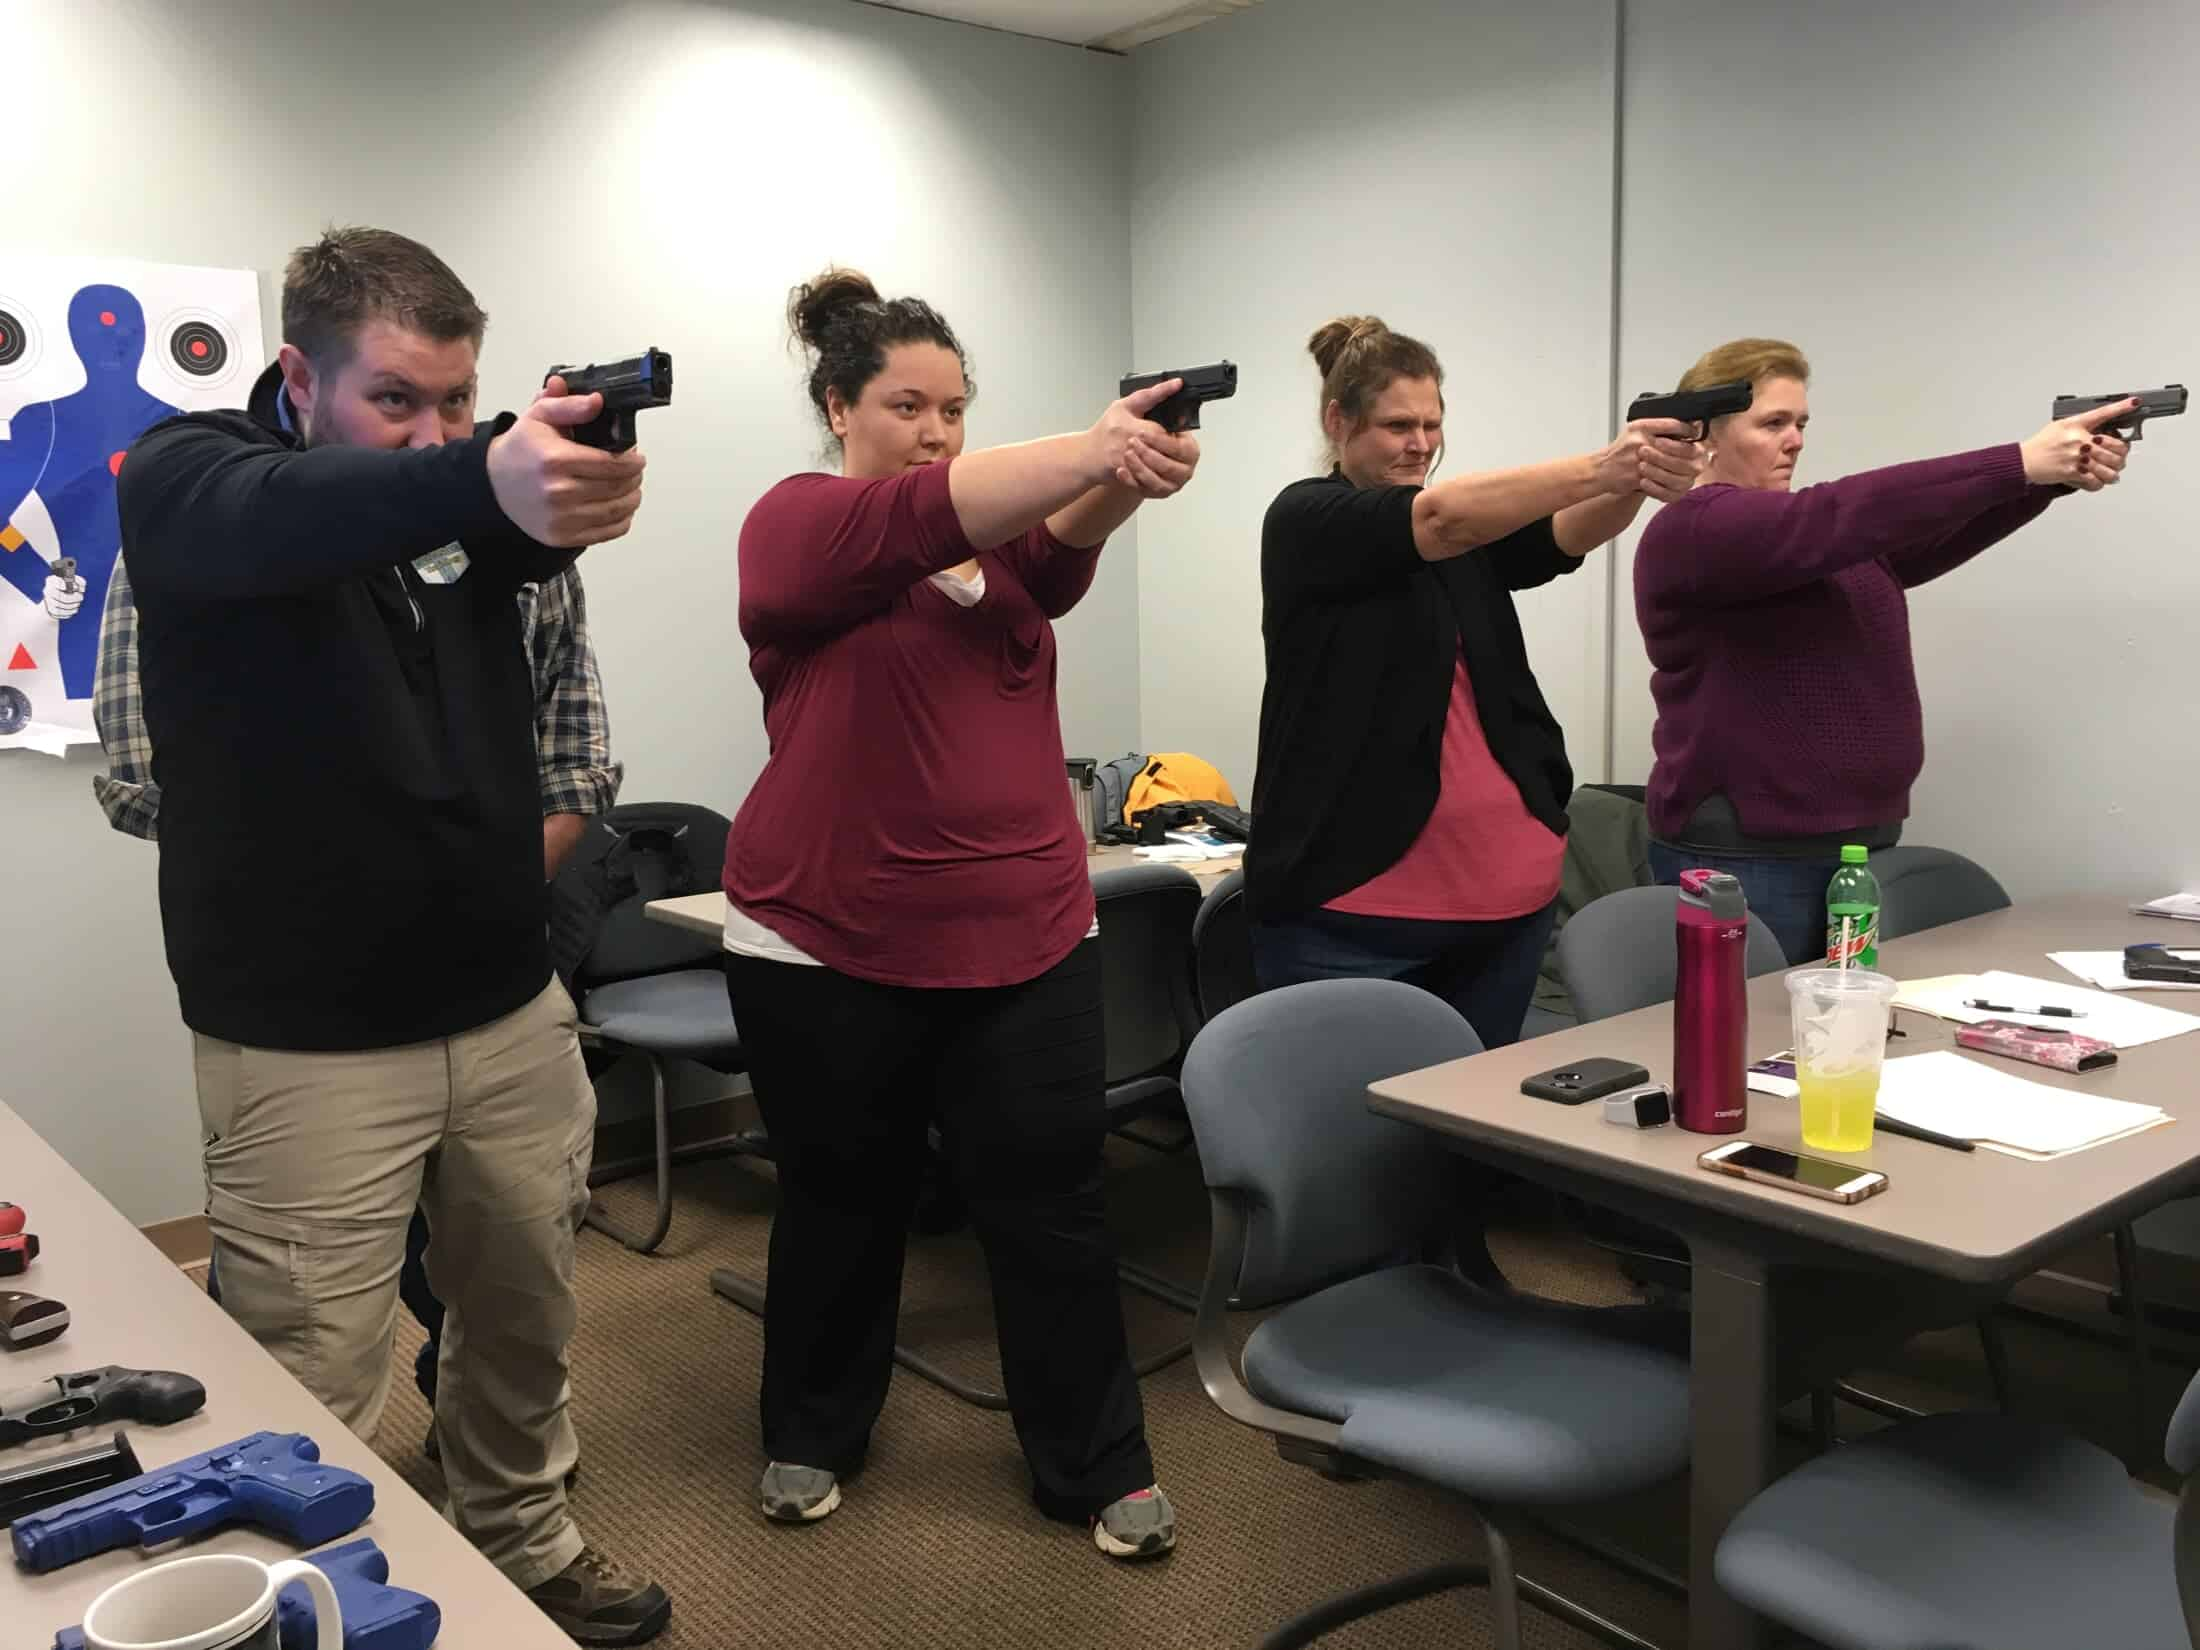 Defensive Pistol Considerations – Beyond Your Concealed Carry Permit Class